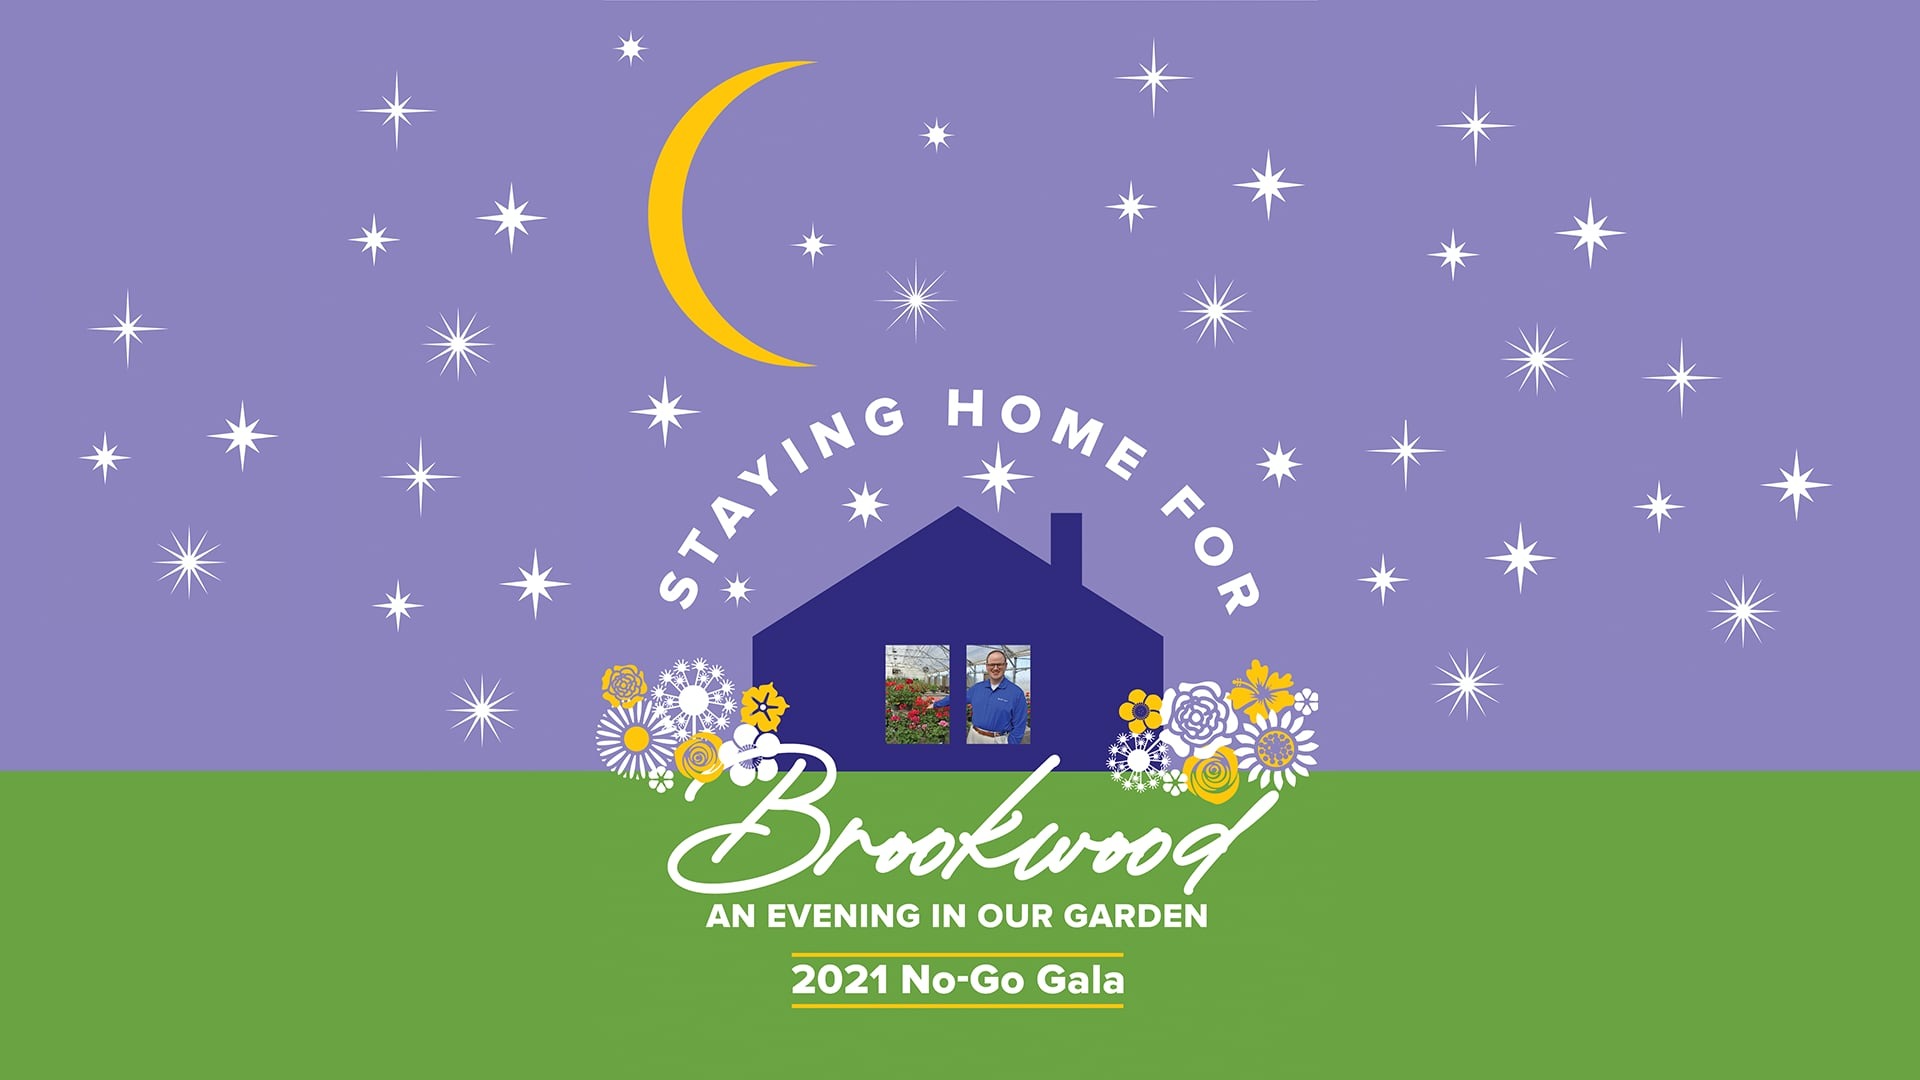 An Evening in our Garden - Staying Home for Brookwood No-Go Gala